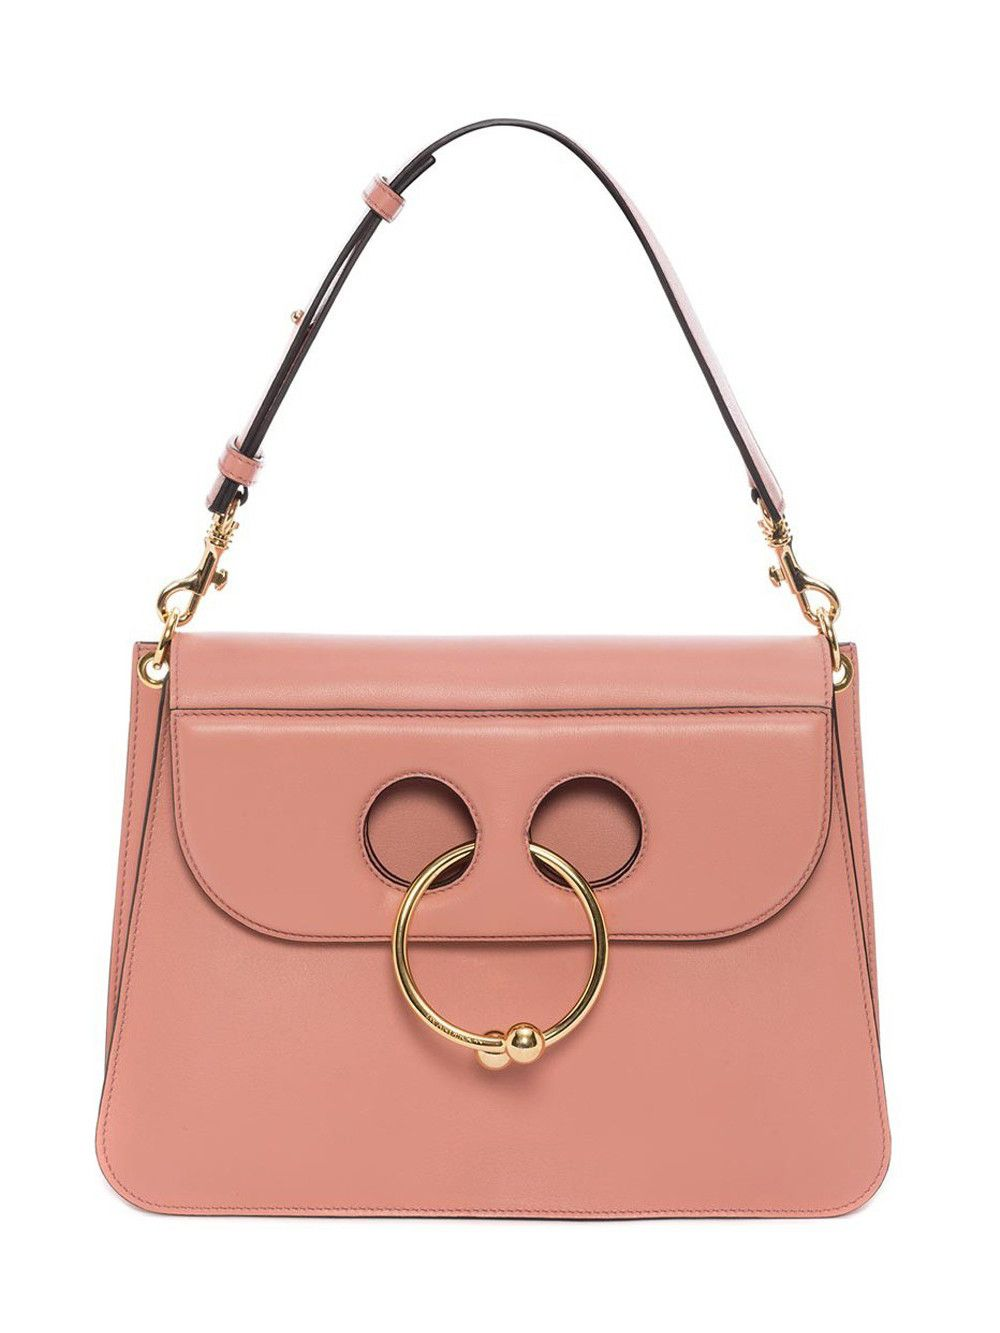 J.W.ANDERSON Dusty Rose Medium Pierce Bag.  j.w.anderson  bags  shoulder  bags  leather   00d1bcc491ac4